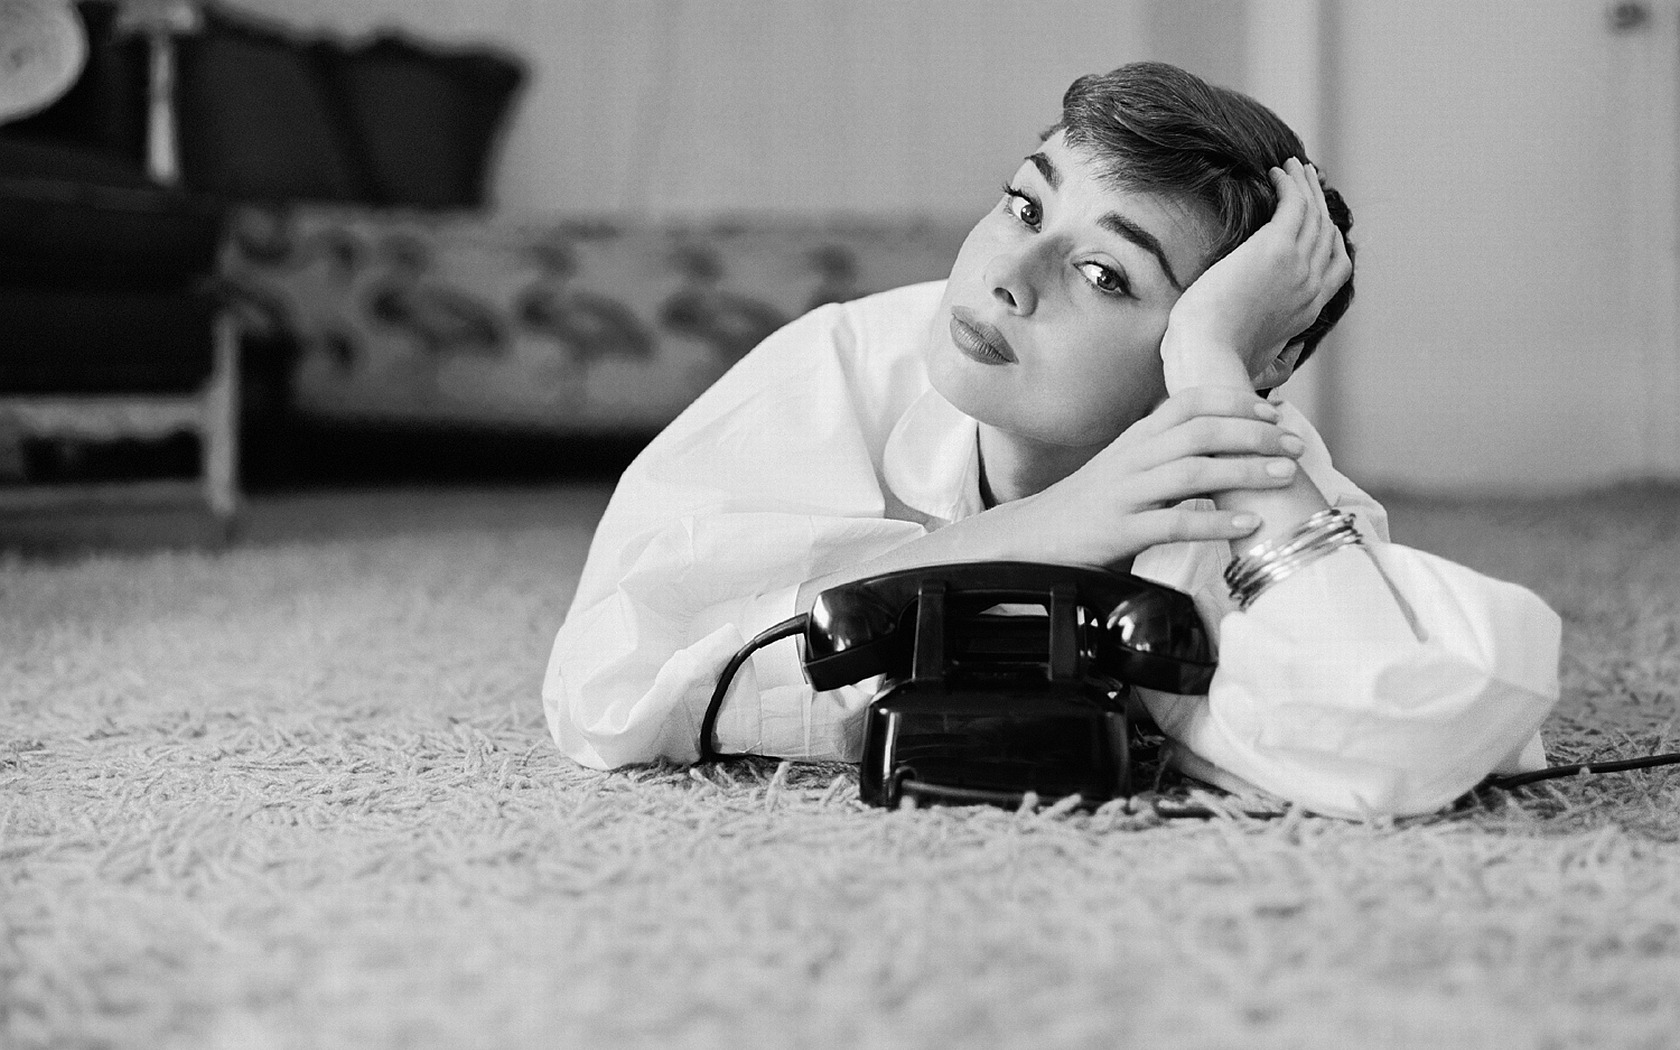 audrey hepburn wallpaper hd wallpapersafari. Black Bedroom Furniture Sets. Home Design Ideas